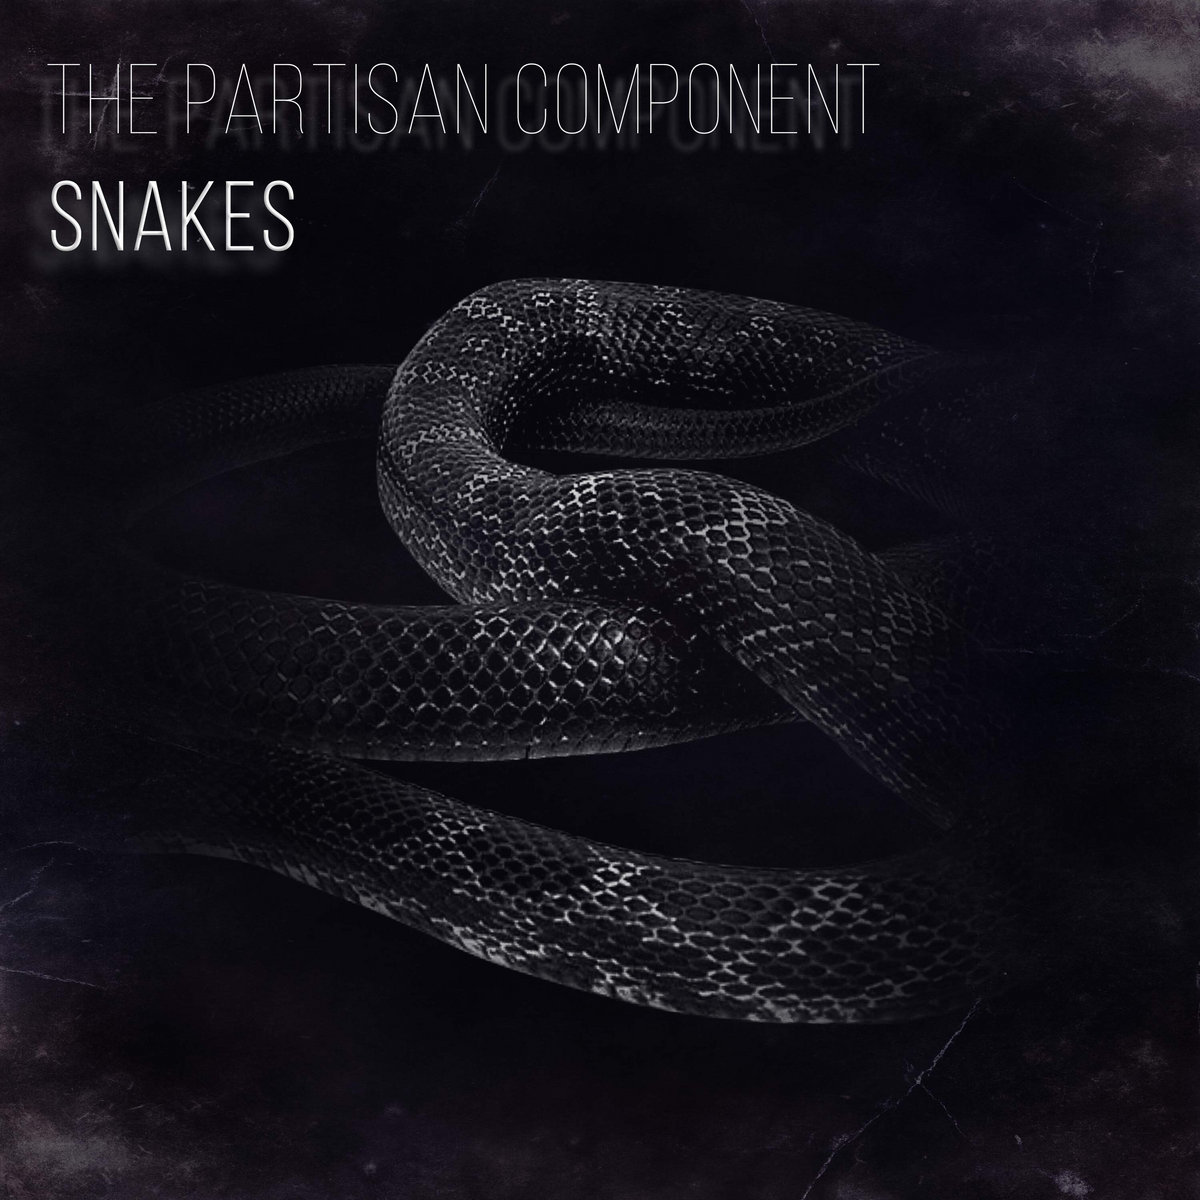 Snakes by The Partisan Component